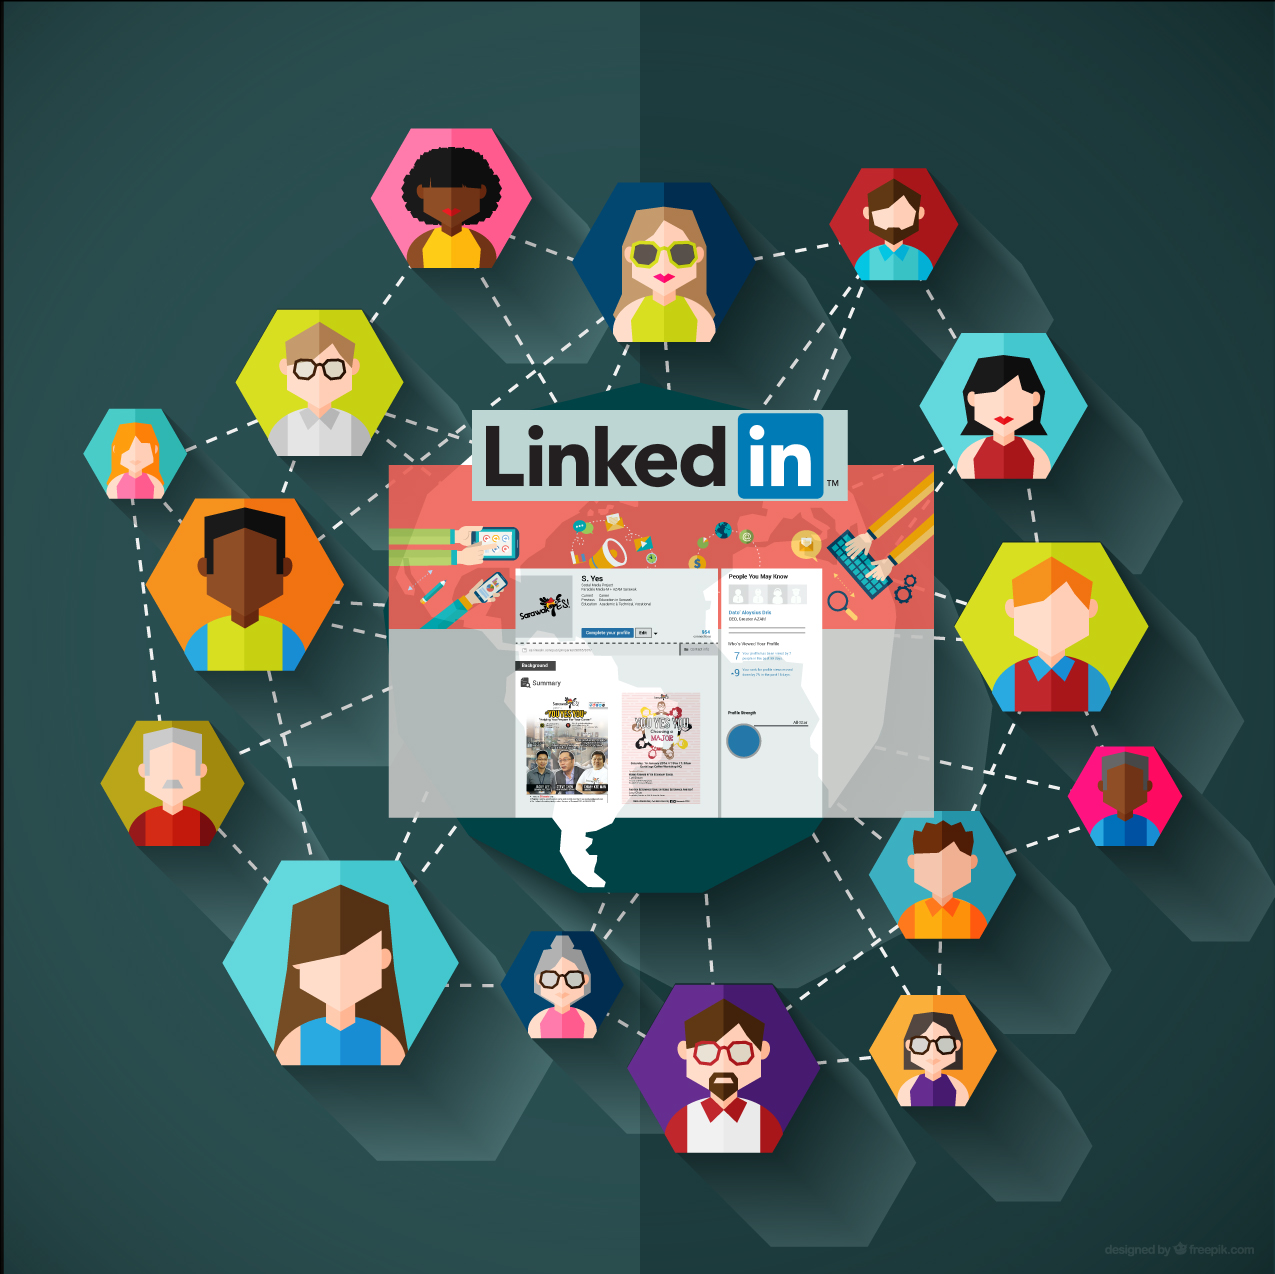 Linking into a social network online